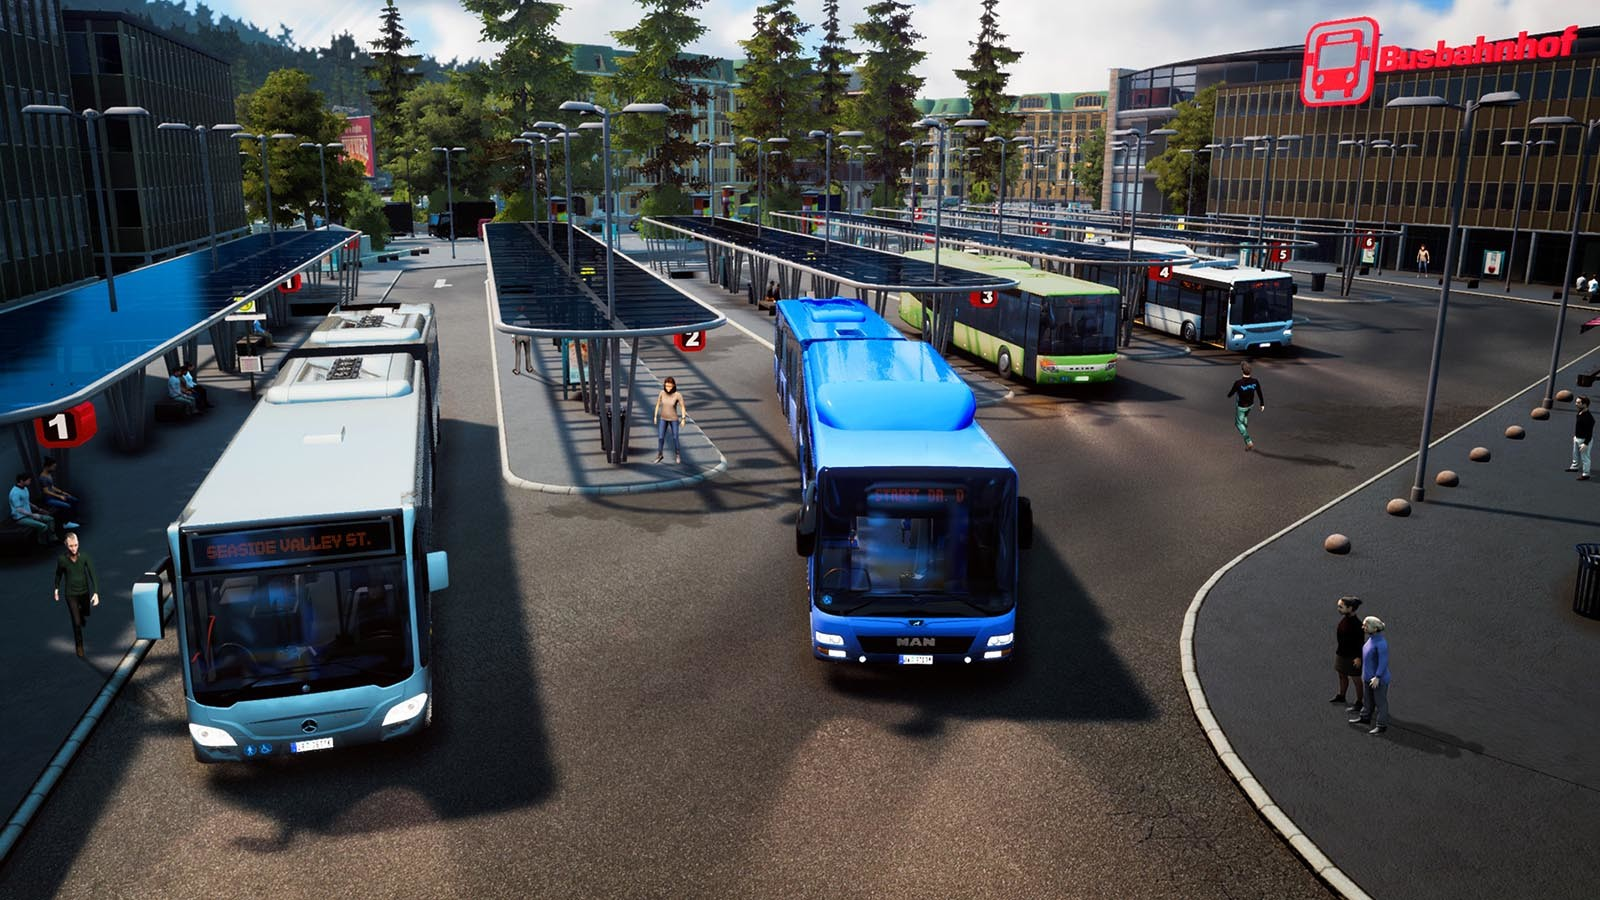 Hands On: Bus Simulator Blends Crazy Taxi, SimCity, and ...